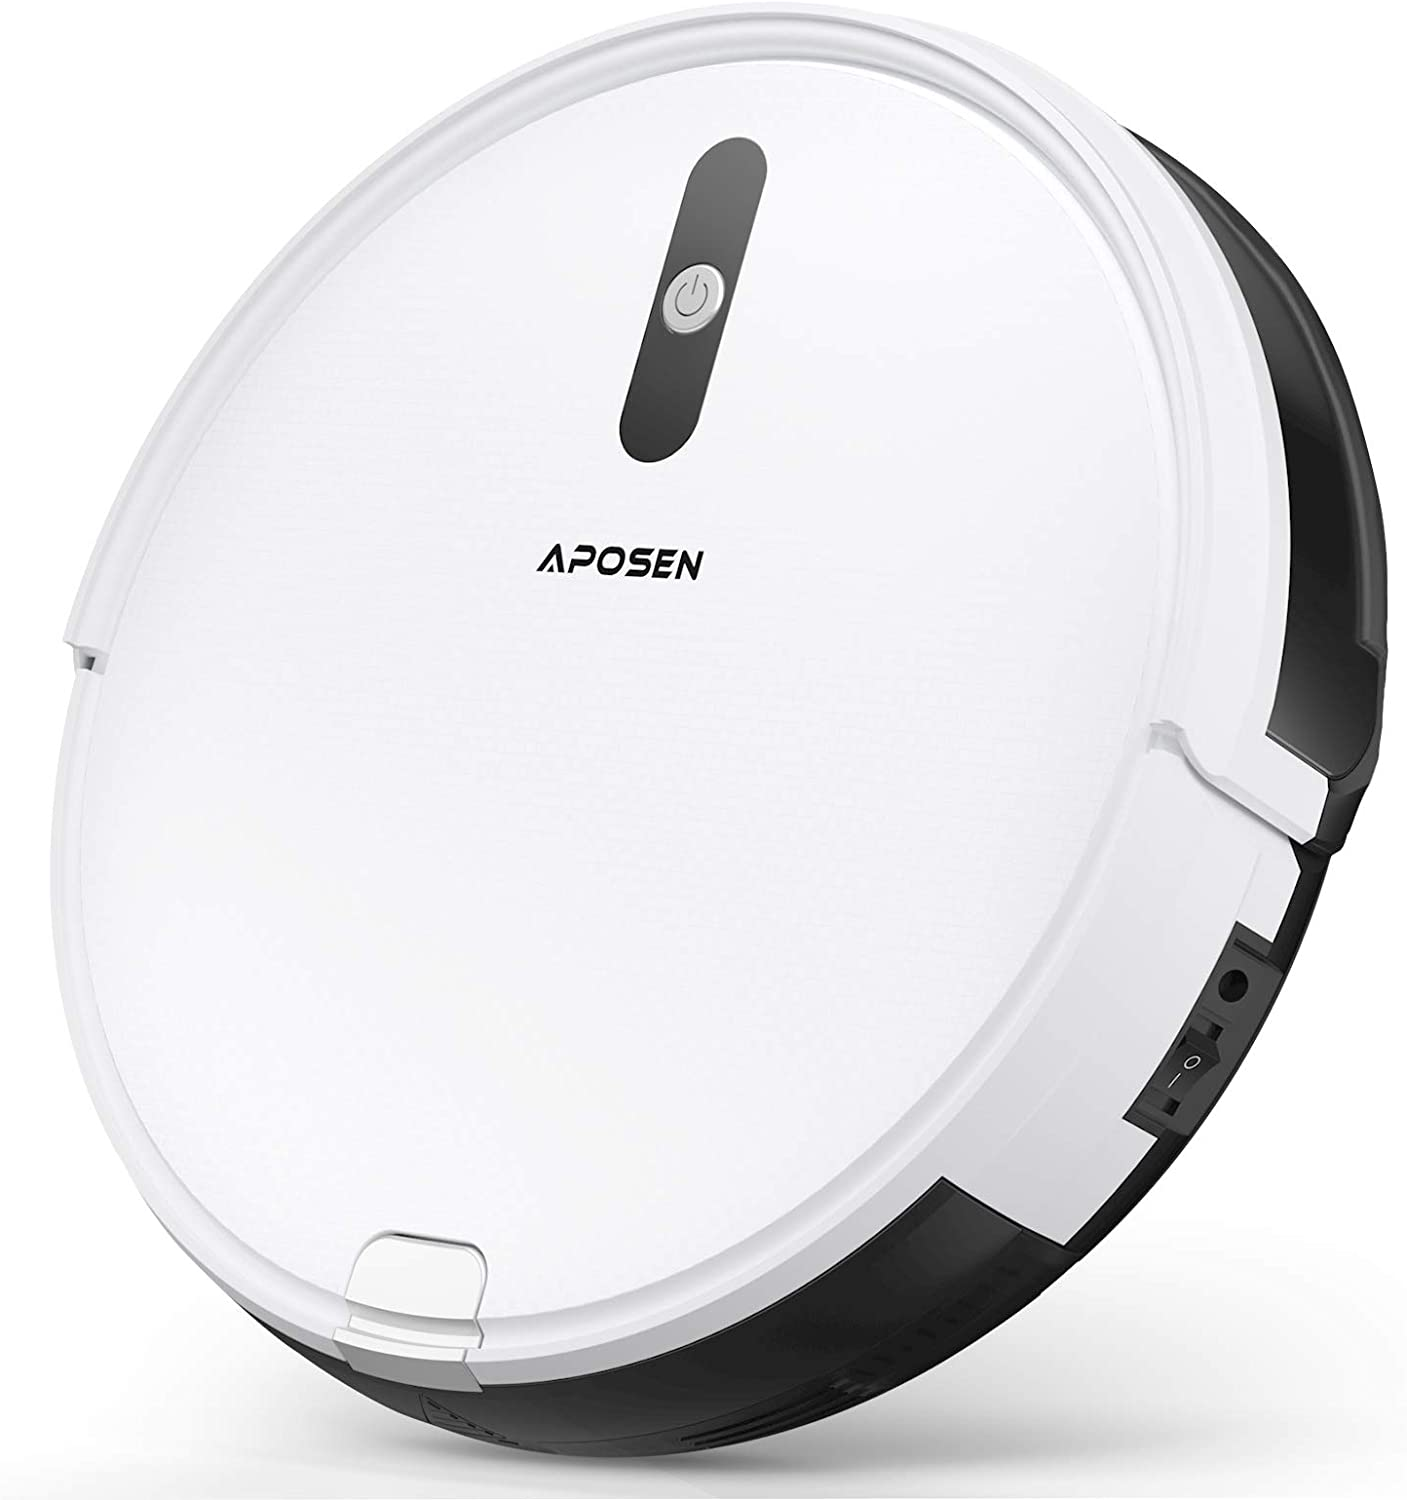 Robot Vacuum, APOSEN Robotic Vacuum Cleaner, Self-Charging, 2.7